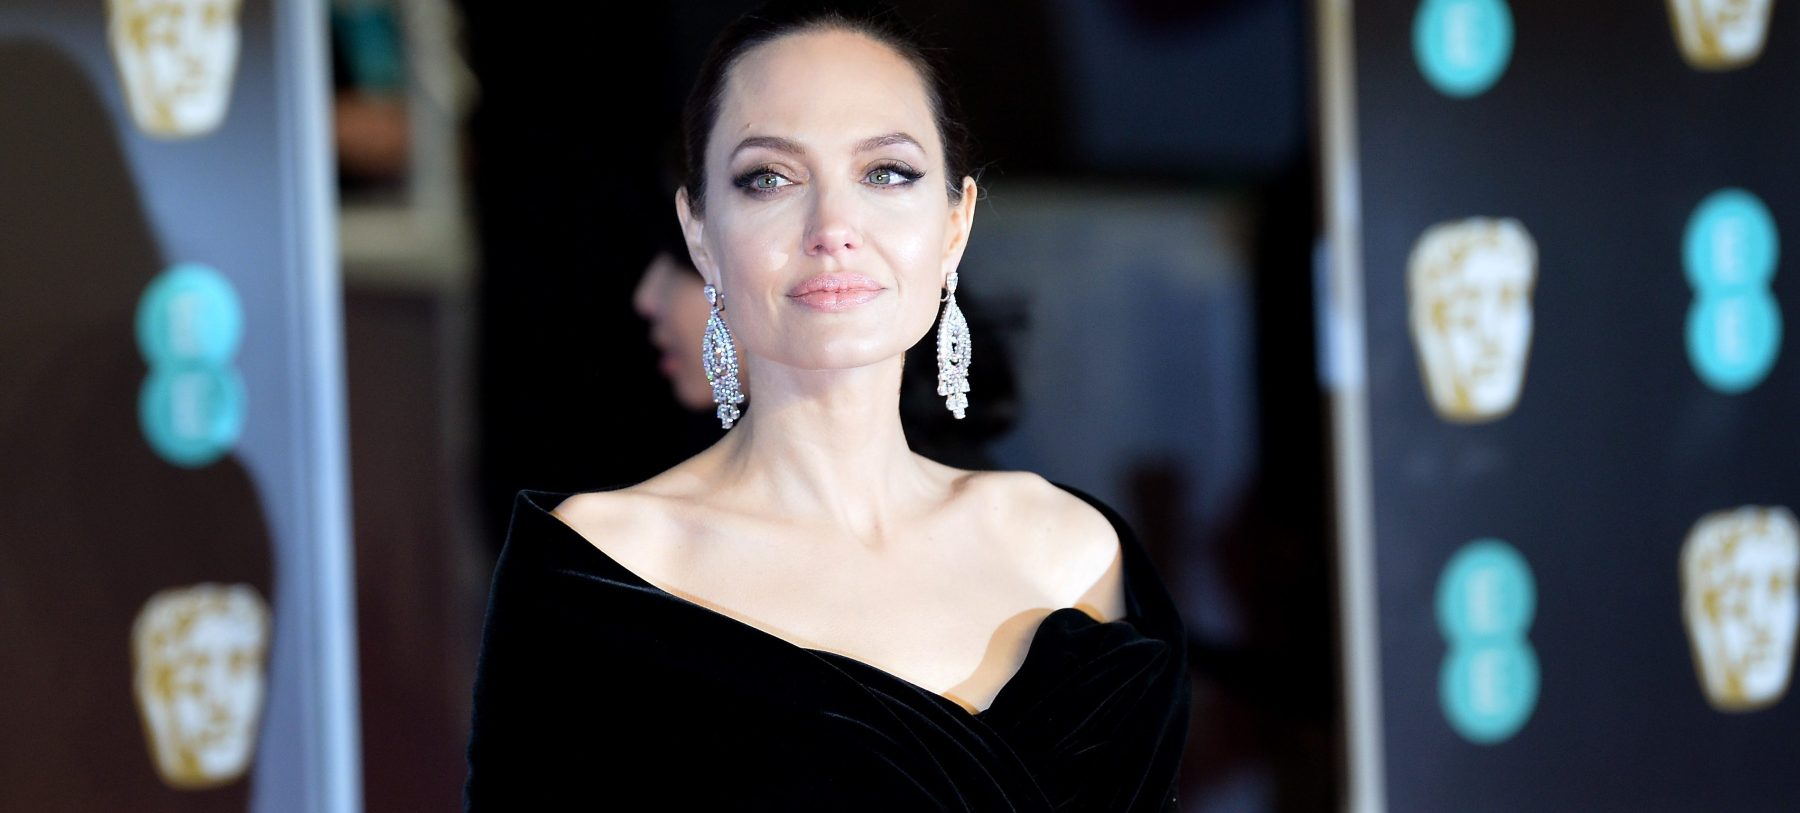 Angelina Jolie attends the EE British Academy Film Awards (BAFTA) held at Royal Albert Hall on February 18, 2018 in London, England.  (Photo by Jeff Spicer/Jeff Spicer/Getty Images)